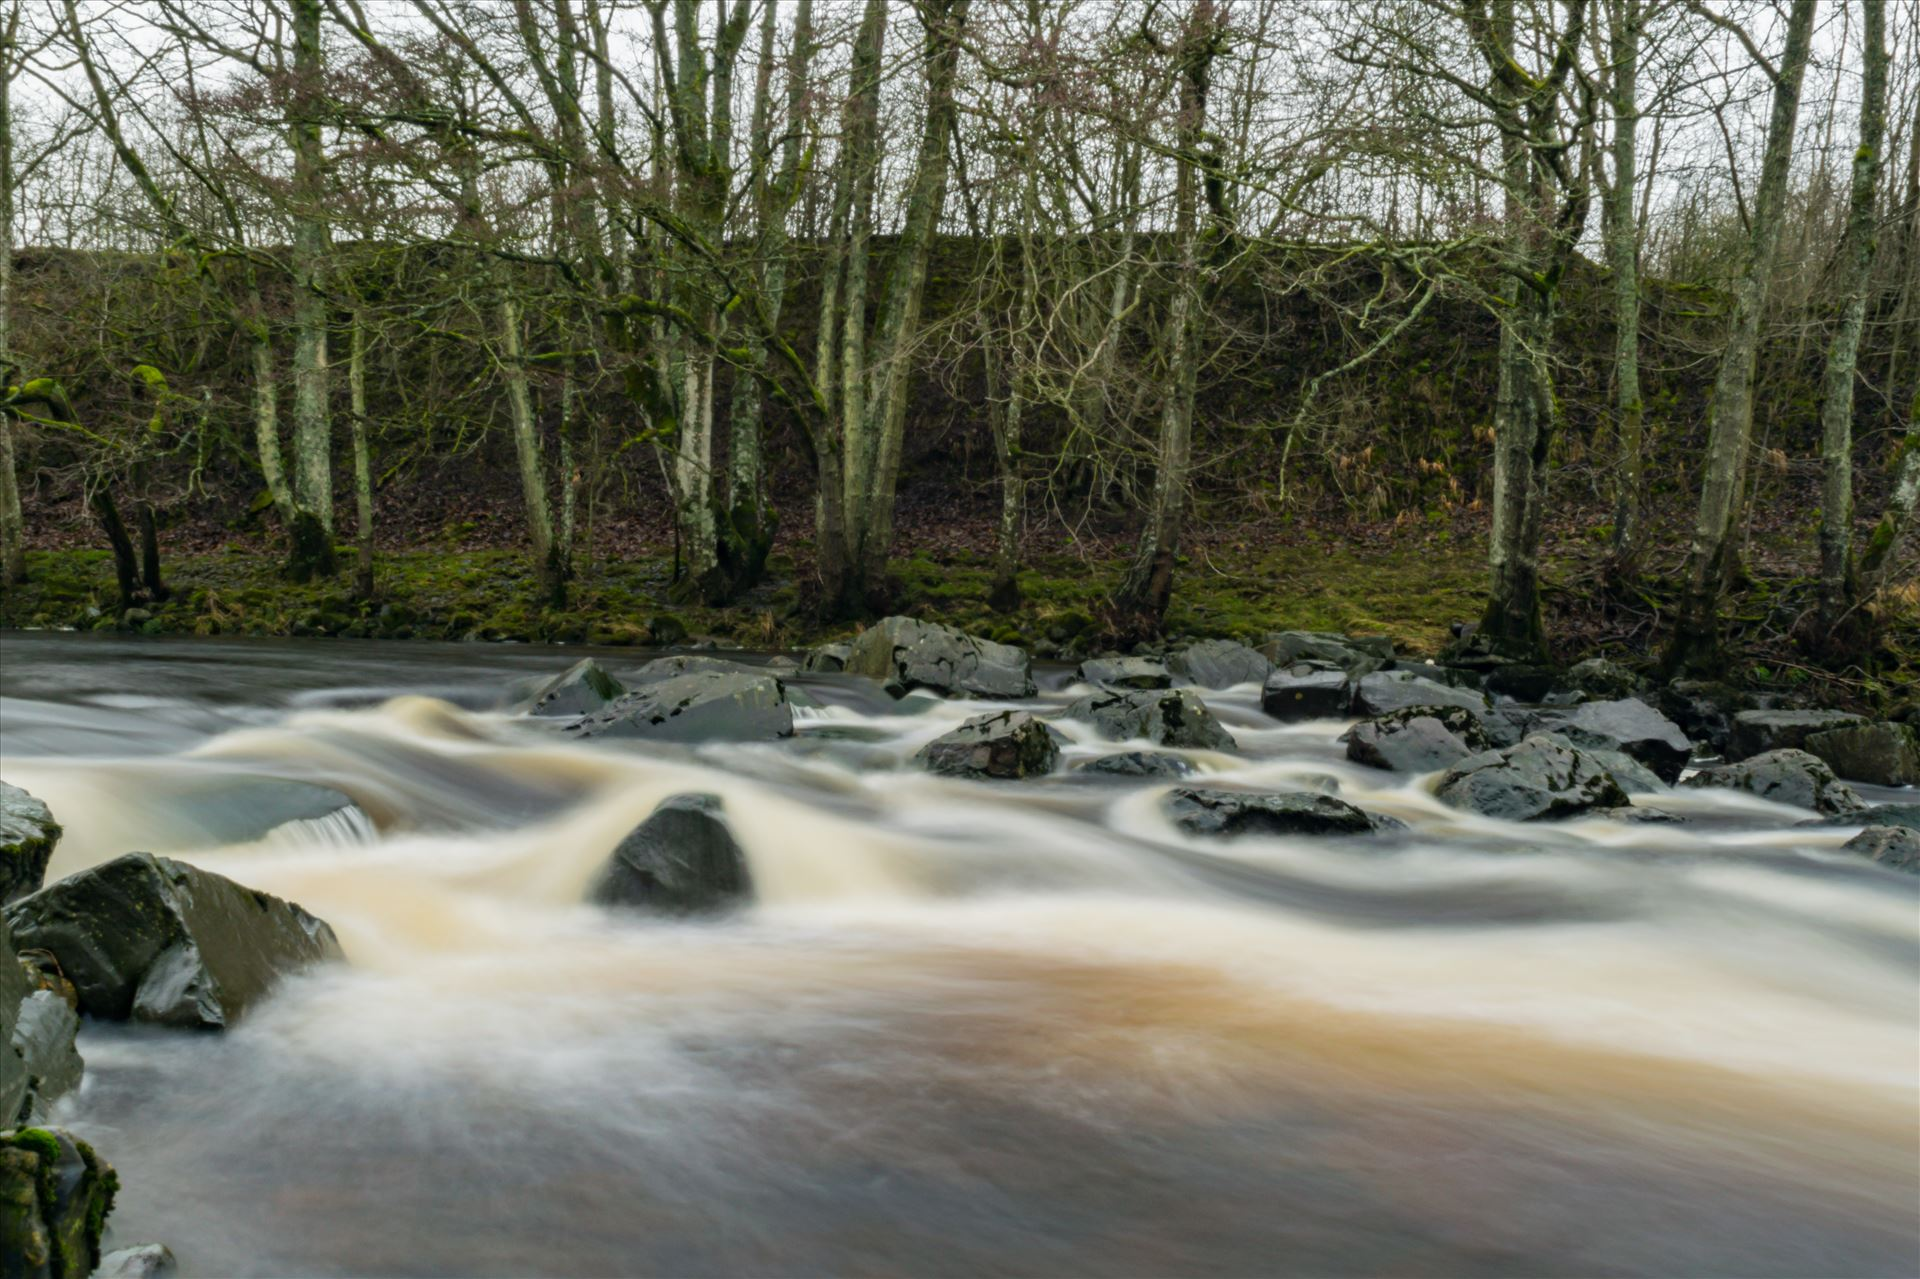 River in Full Flow - A river in full flow, taken with a ND filter and a 15 scoond exposure by AJ Stoves Photography